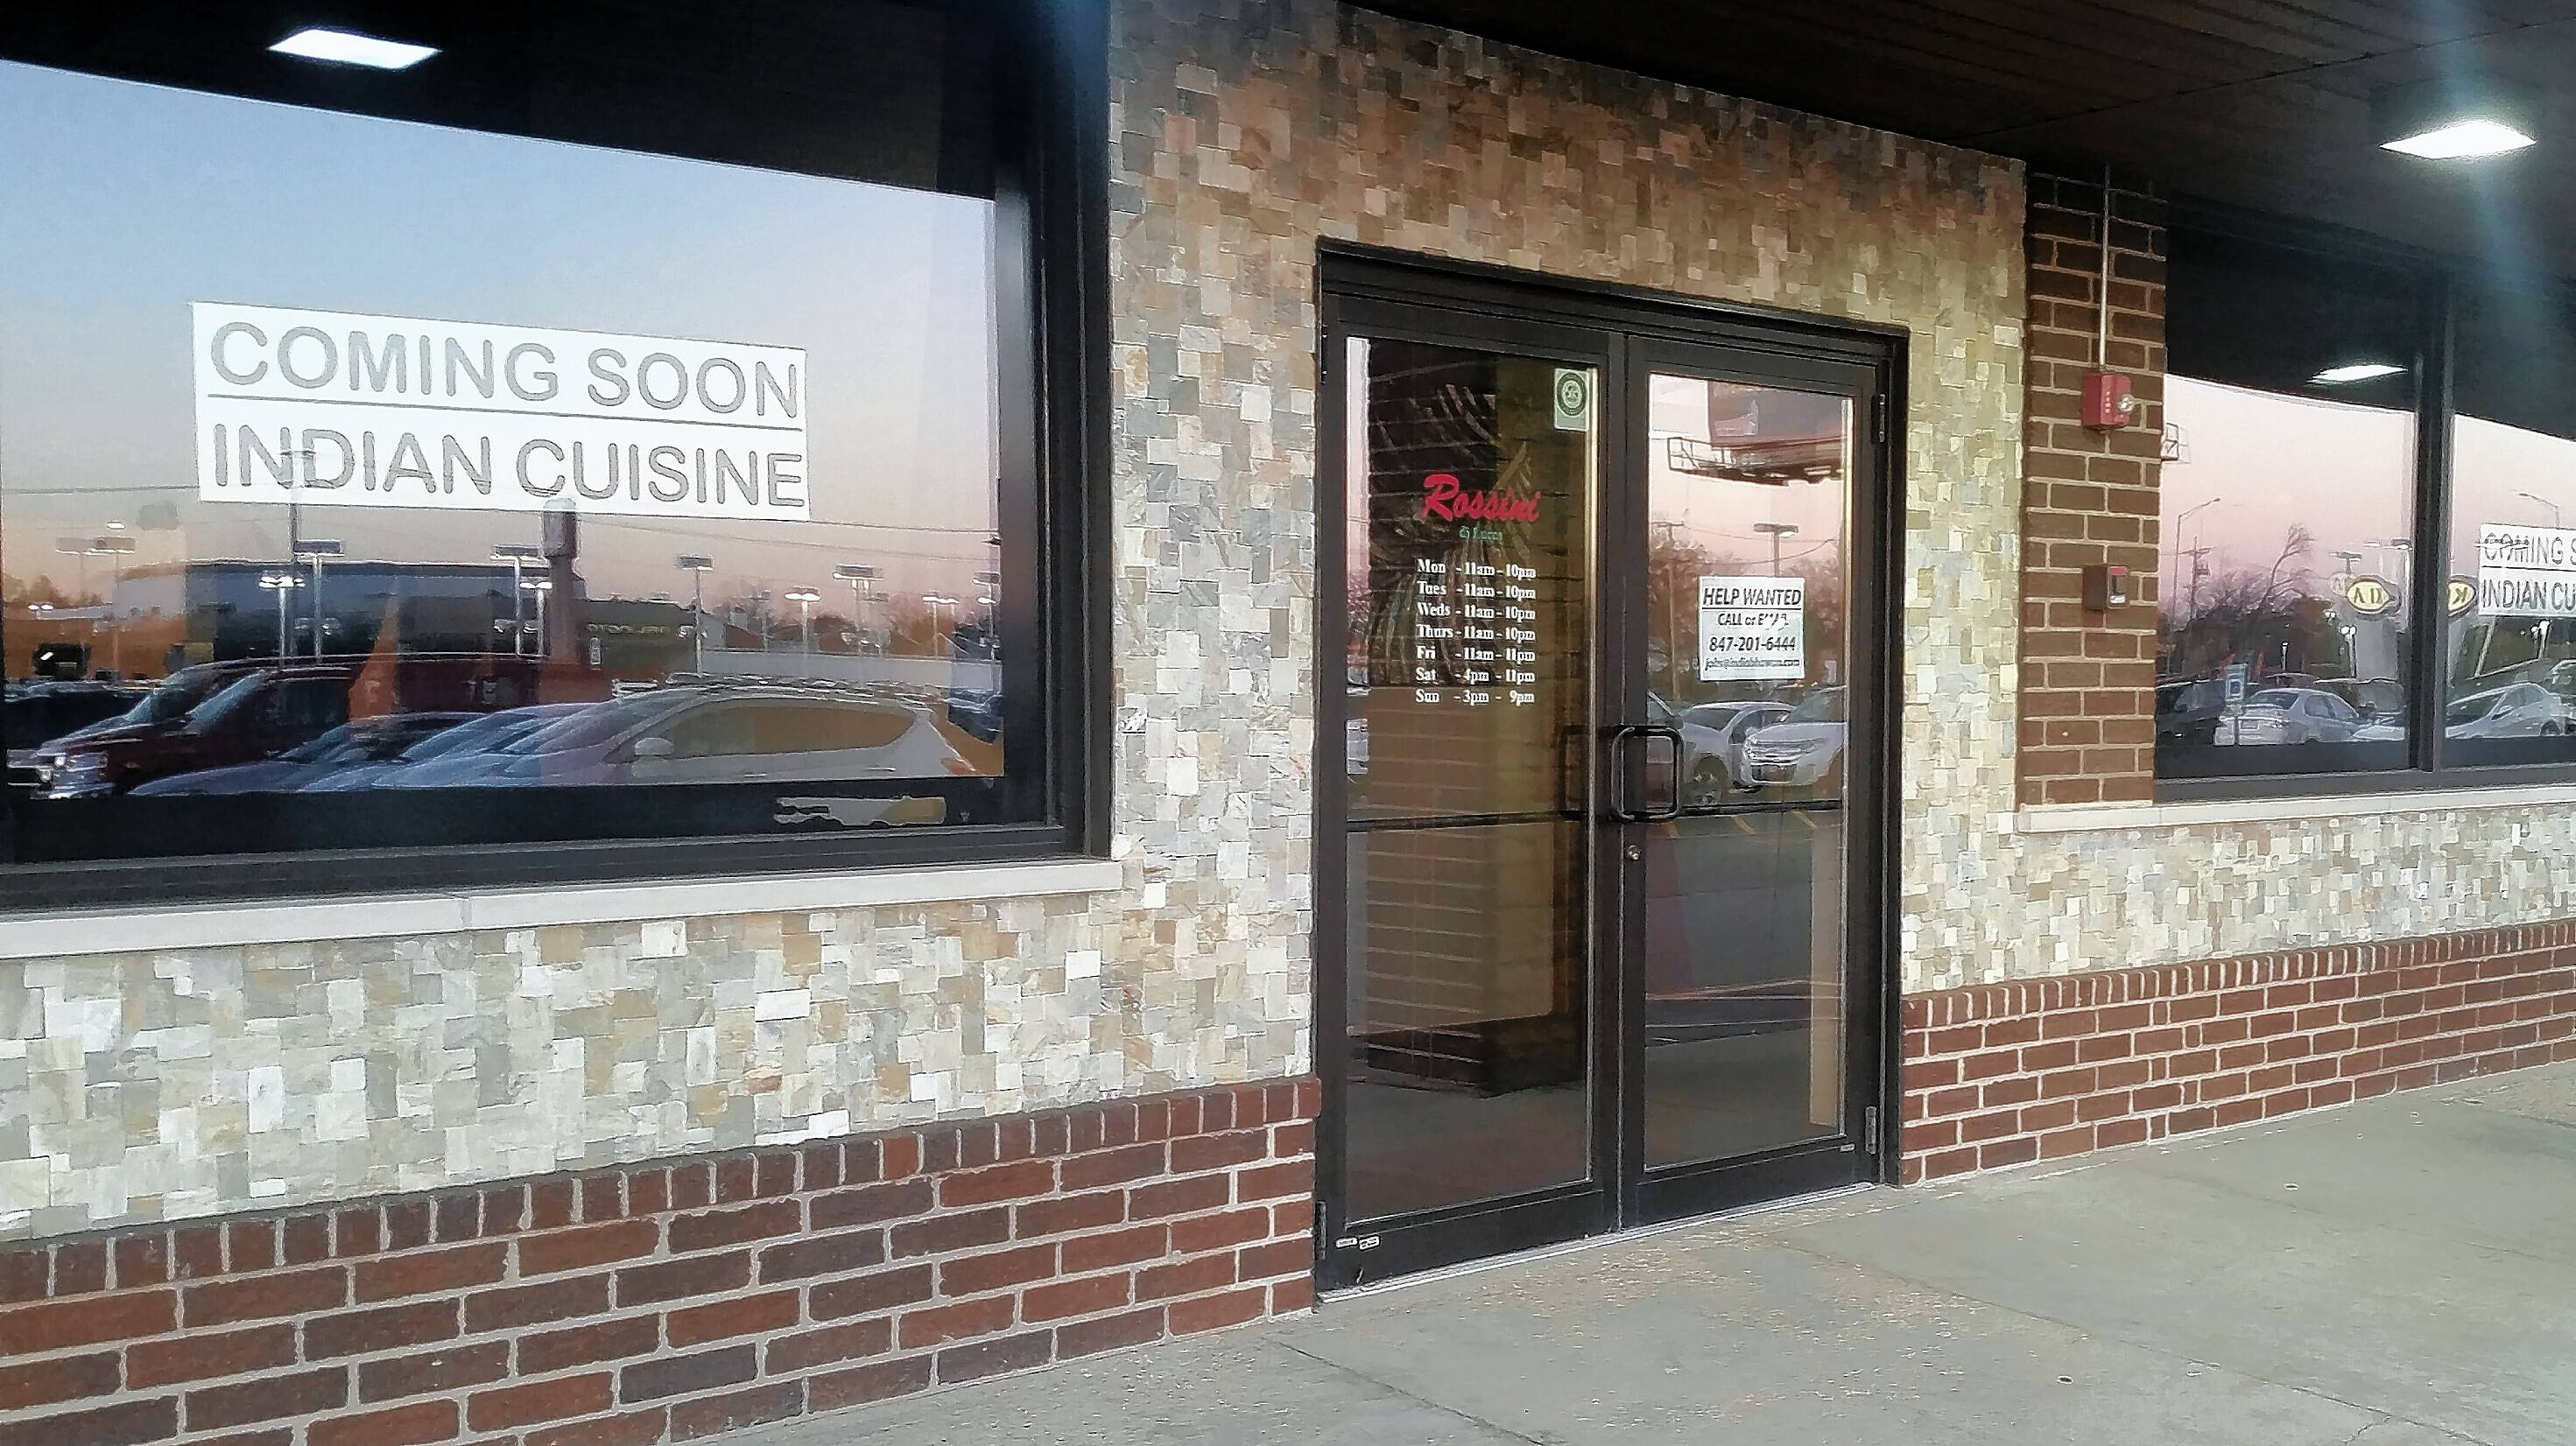 A new Indian restaurant called India Bhawan is set to open at 1280 E. Dundee Road in Palatine, perhaps as soon as this weekend. The restaurant proposal won the approval of the Palatine village council Monday.